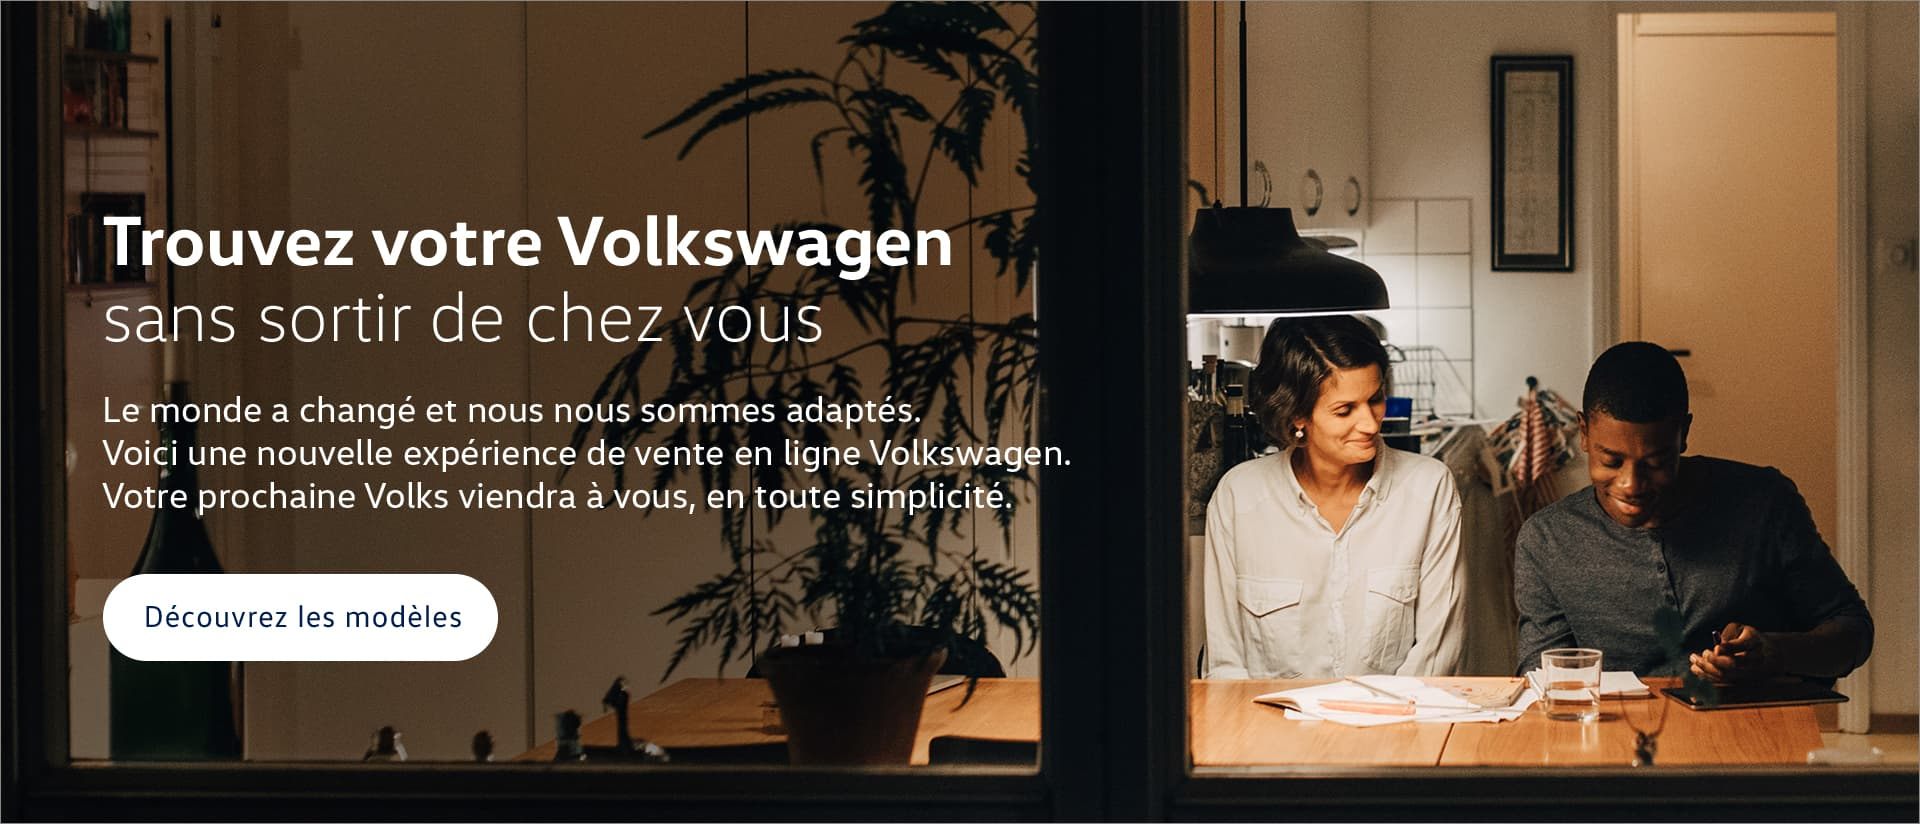 Buy A Vw From Home Slide 1920x824 Fr